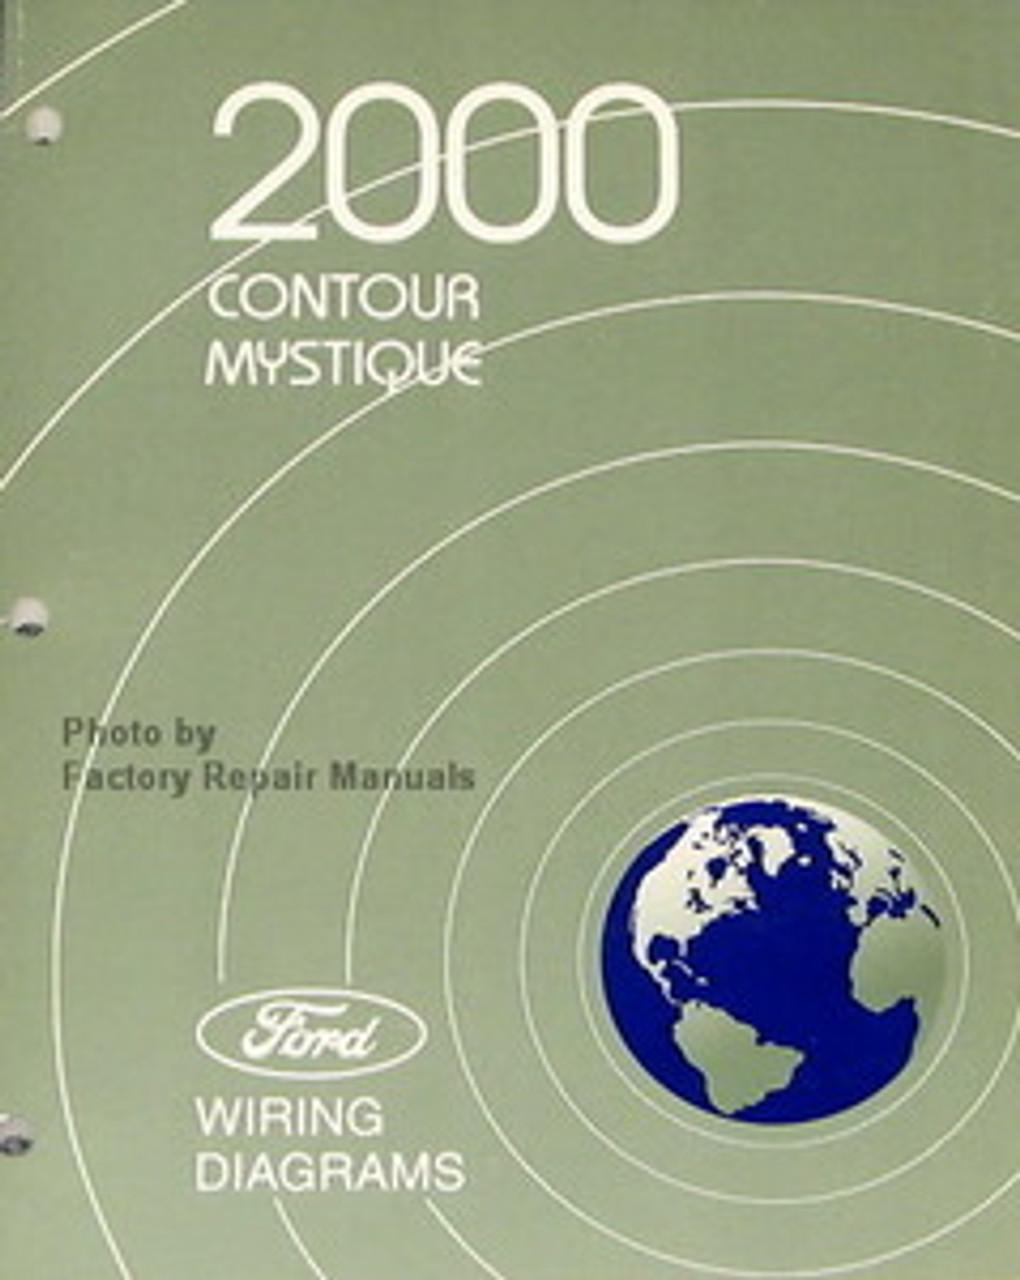 2000 Ford Contour  Mercury Mystique Electrical Wiring Diagrams - Original Manual